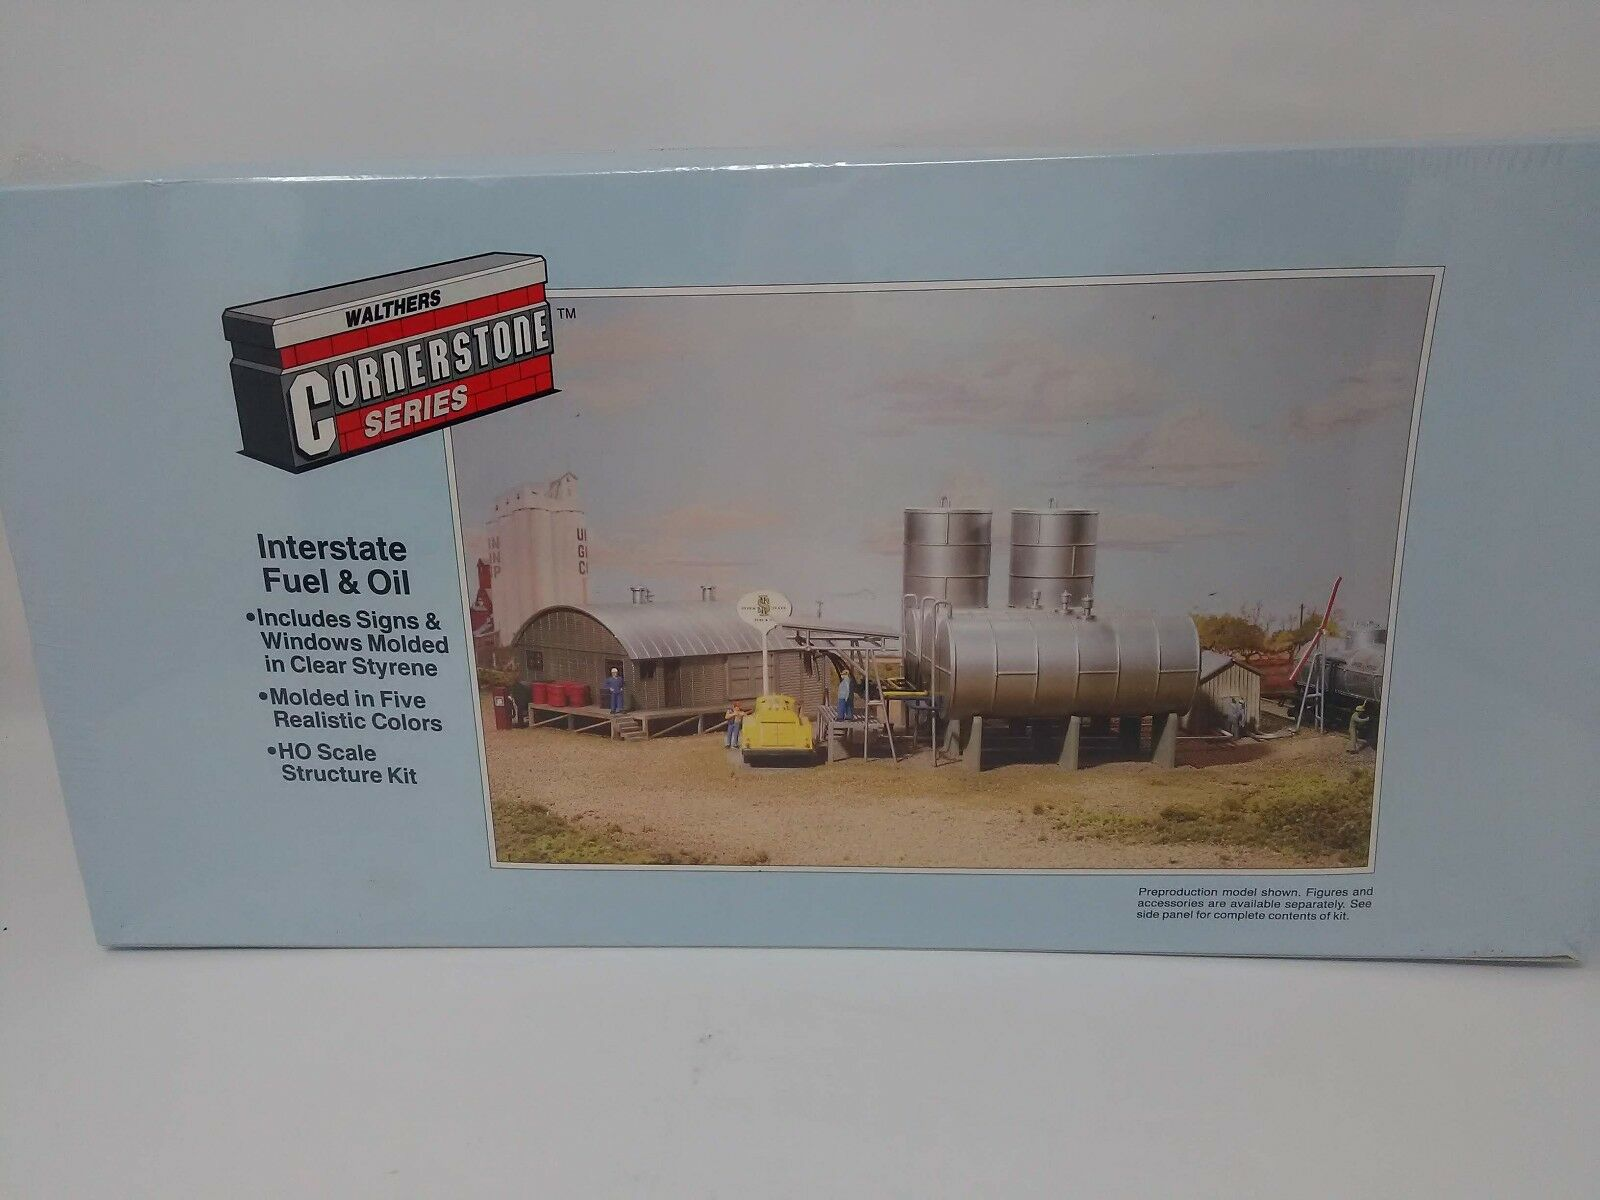 Walthers Interstate Fuel & Oil HO Scale Kit  933-3006 Cornerstone Series Sealed